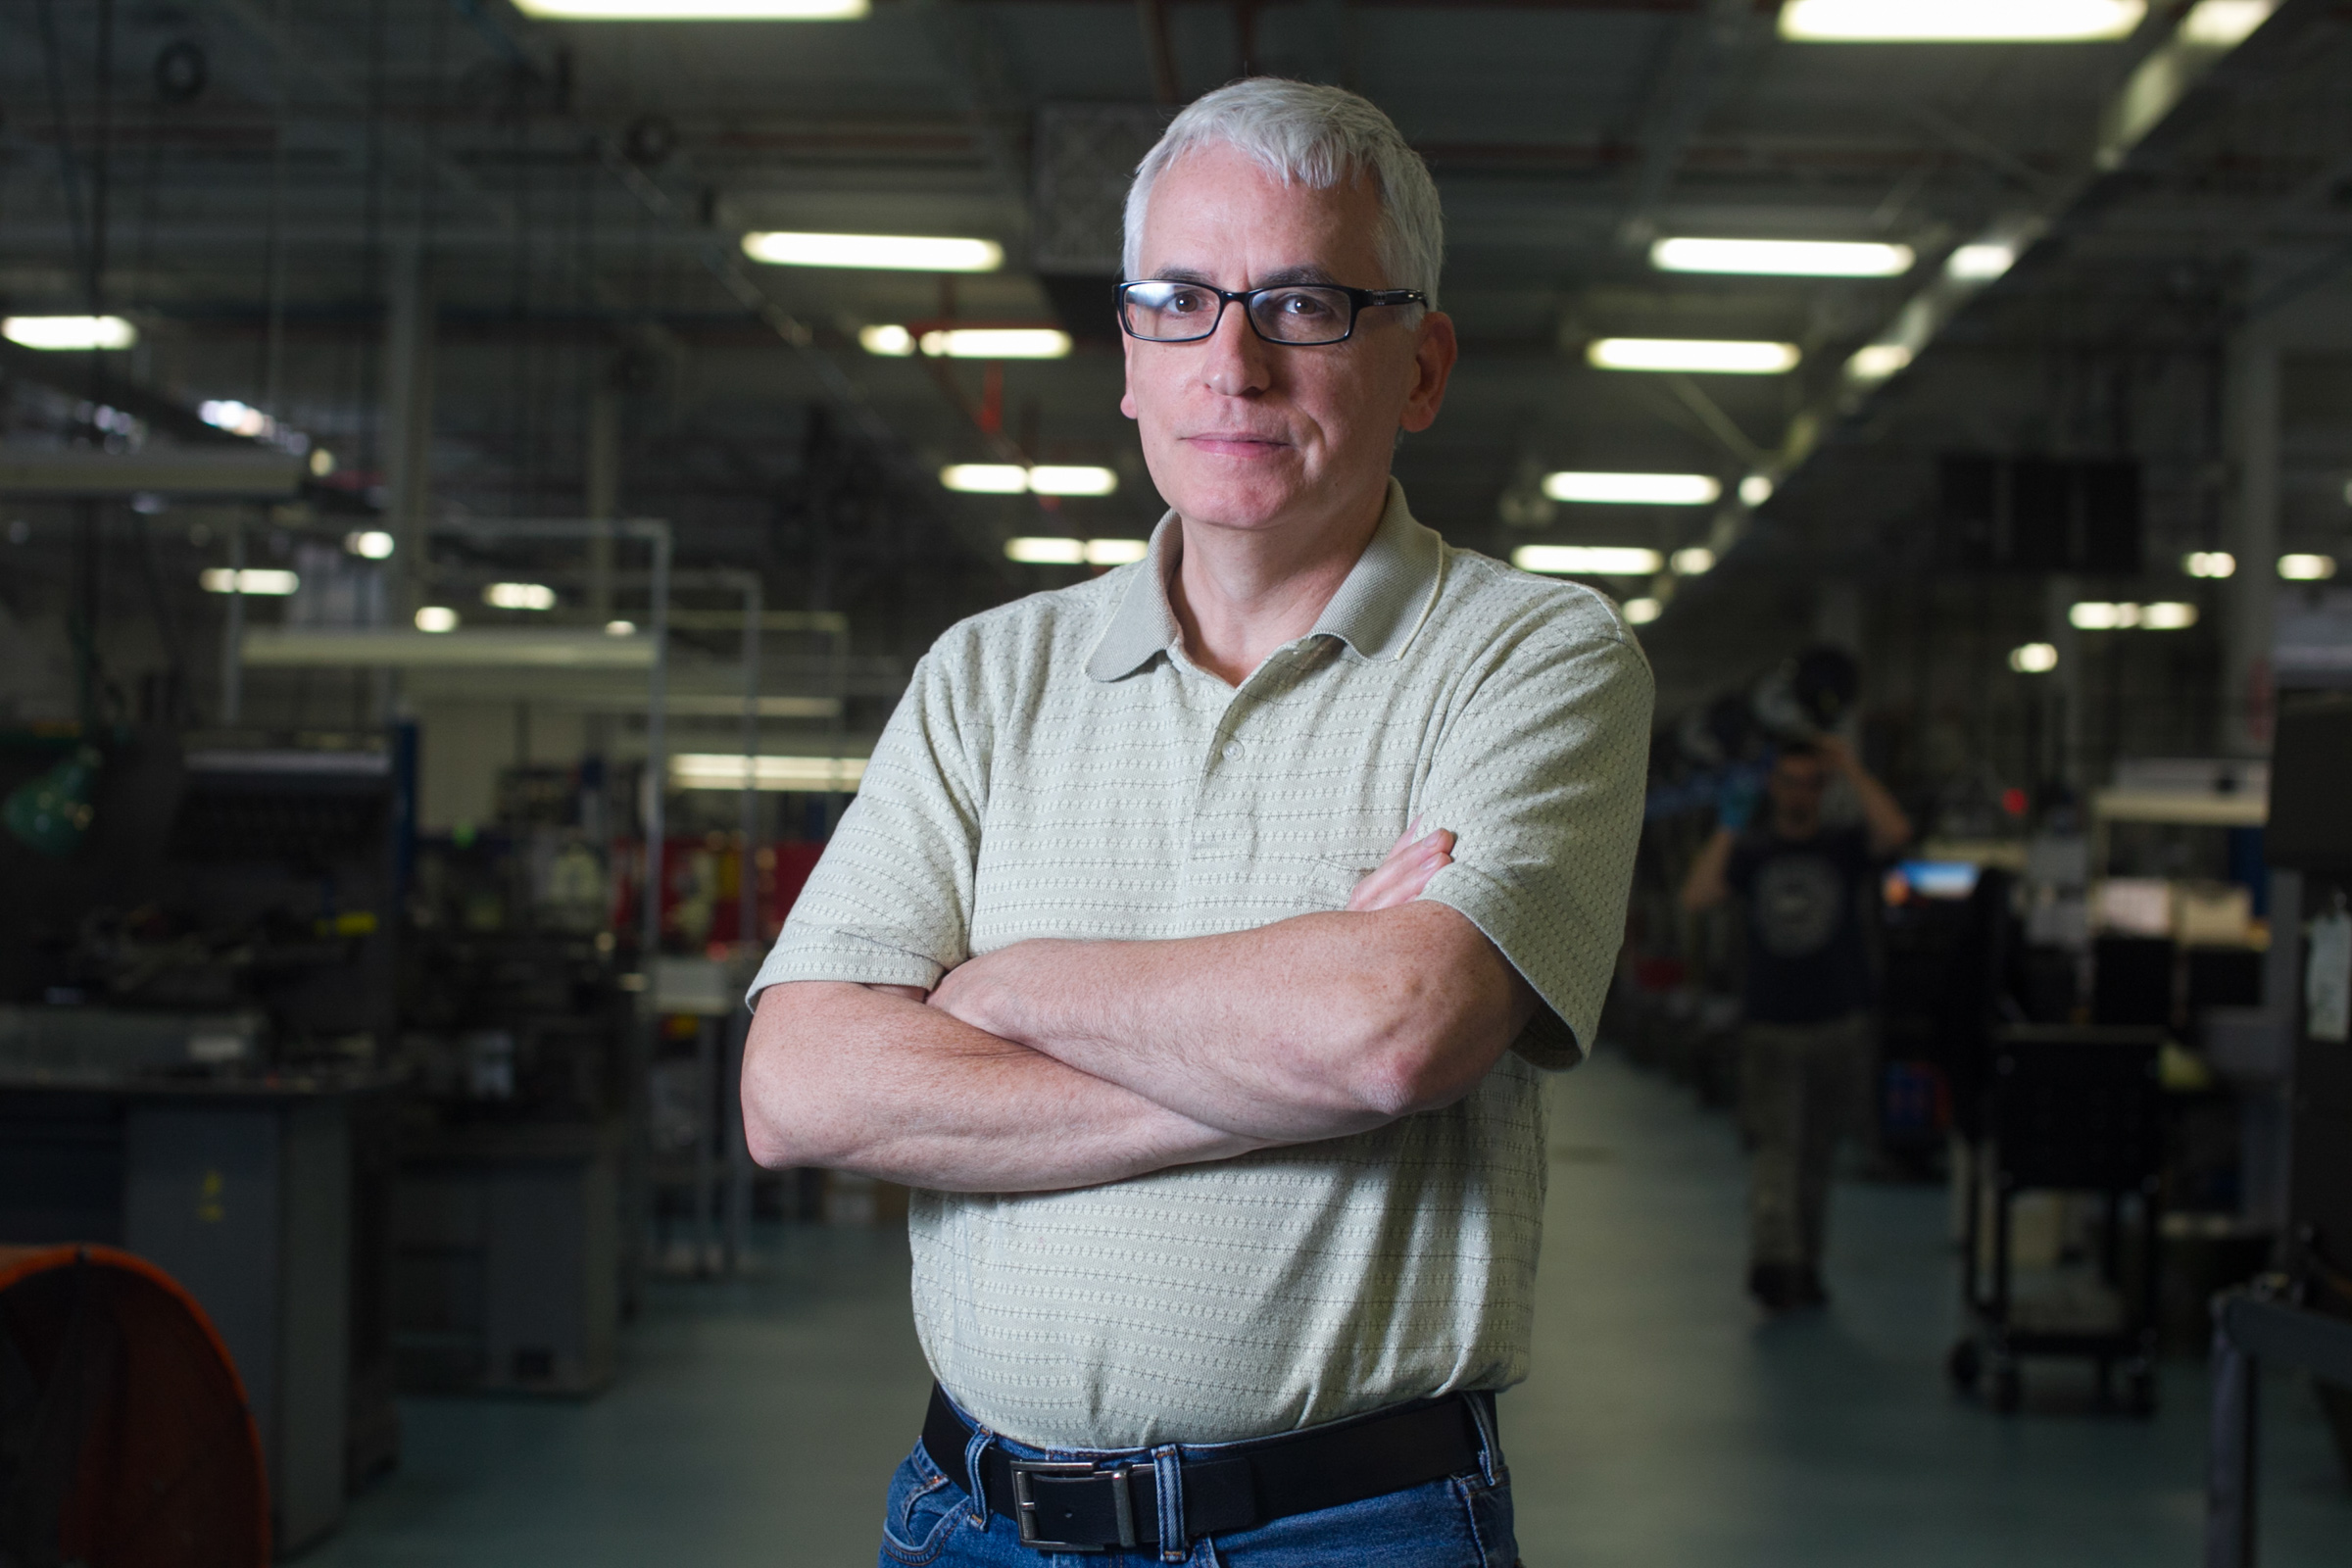 Kenneth Mandile, President of Swissturn/USA poses for a photo on the manufacturing floor of his business in Oxford, Massachusetts on June 17, 2015. Matthew Healey for The Boston Globe(Metro Section. Reporter Felice Belman - Assigning editor Matt Lee)